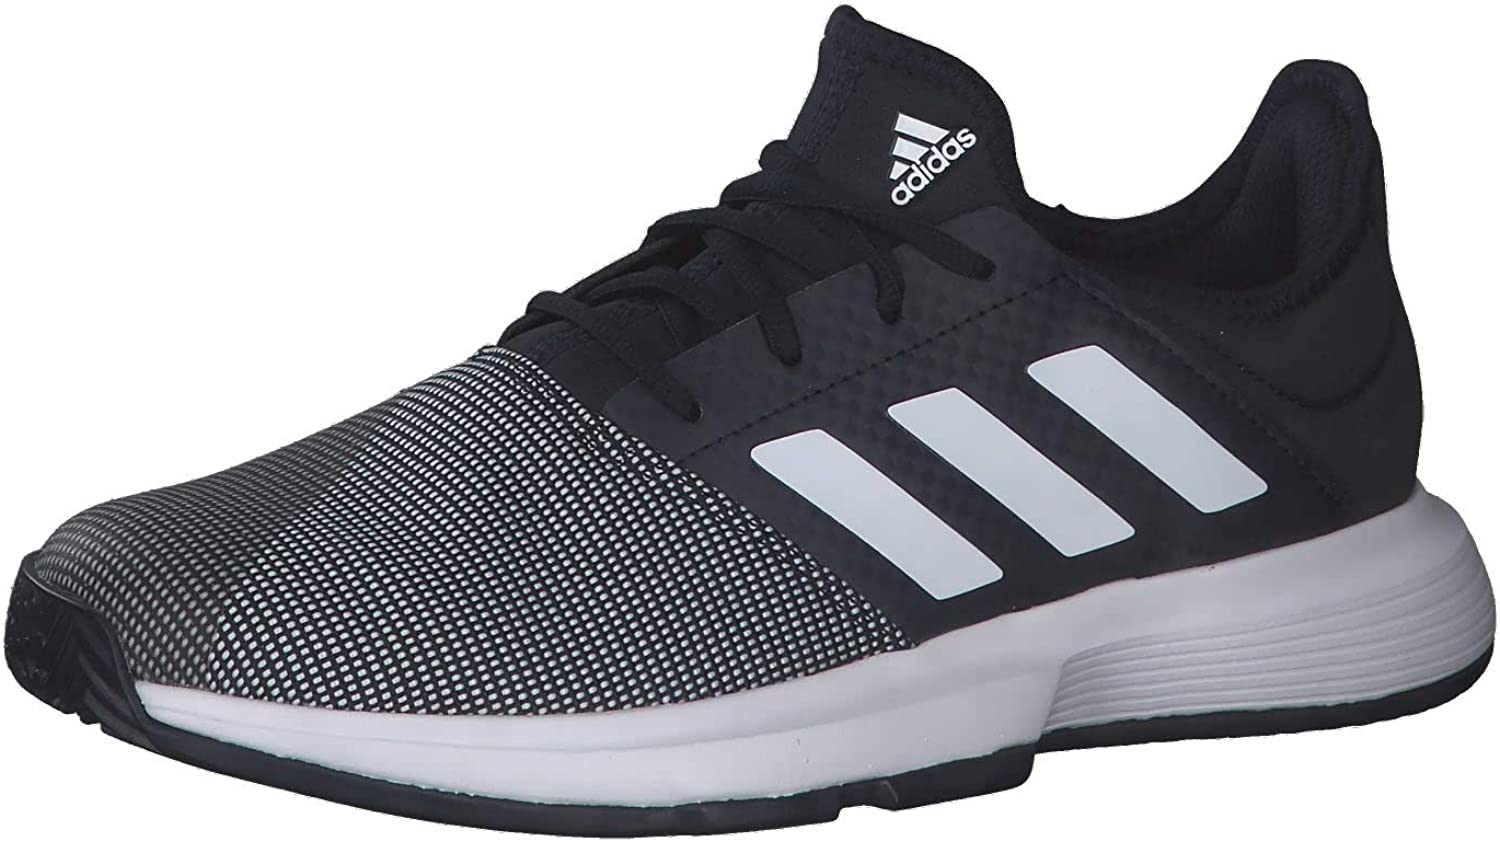 adidas Mens GameCourt Tennis Shoes Black Sports Breathable Lightweight